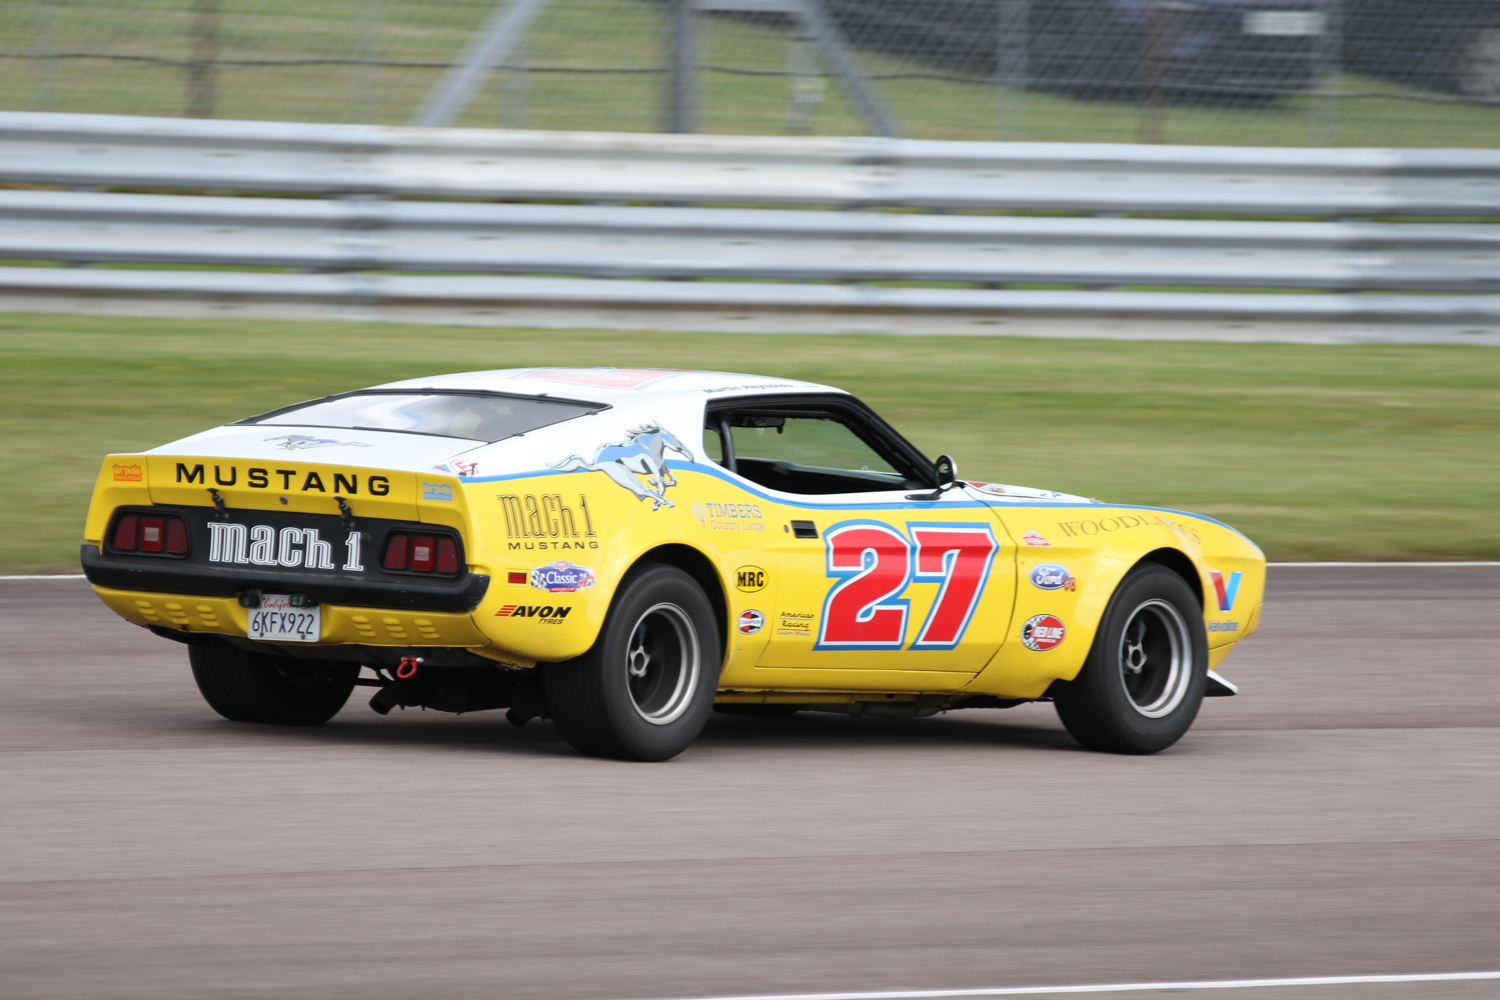 Martin Reynolds and his Ford Mustang Mach 1. Picasa